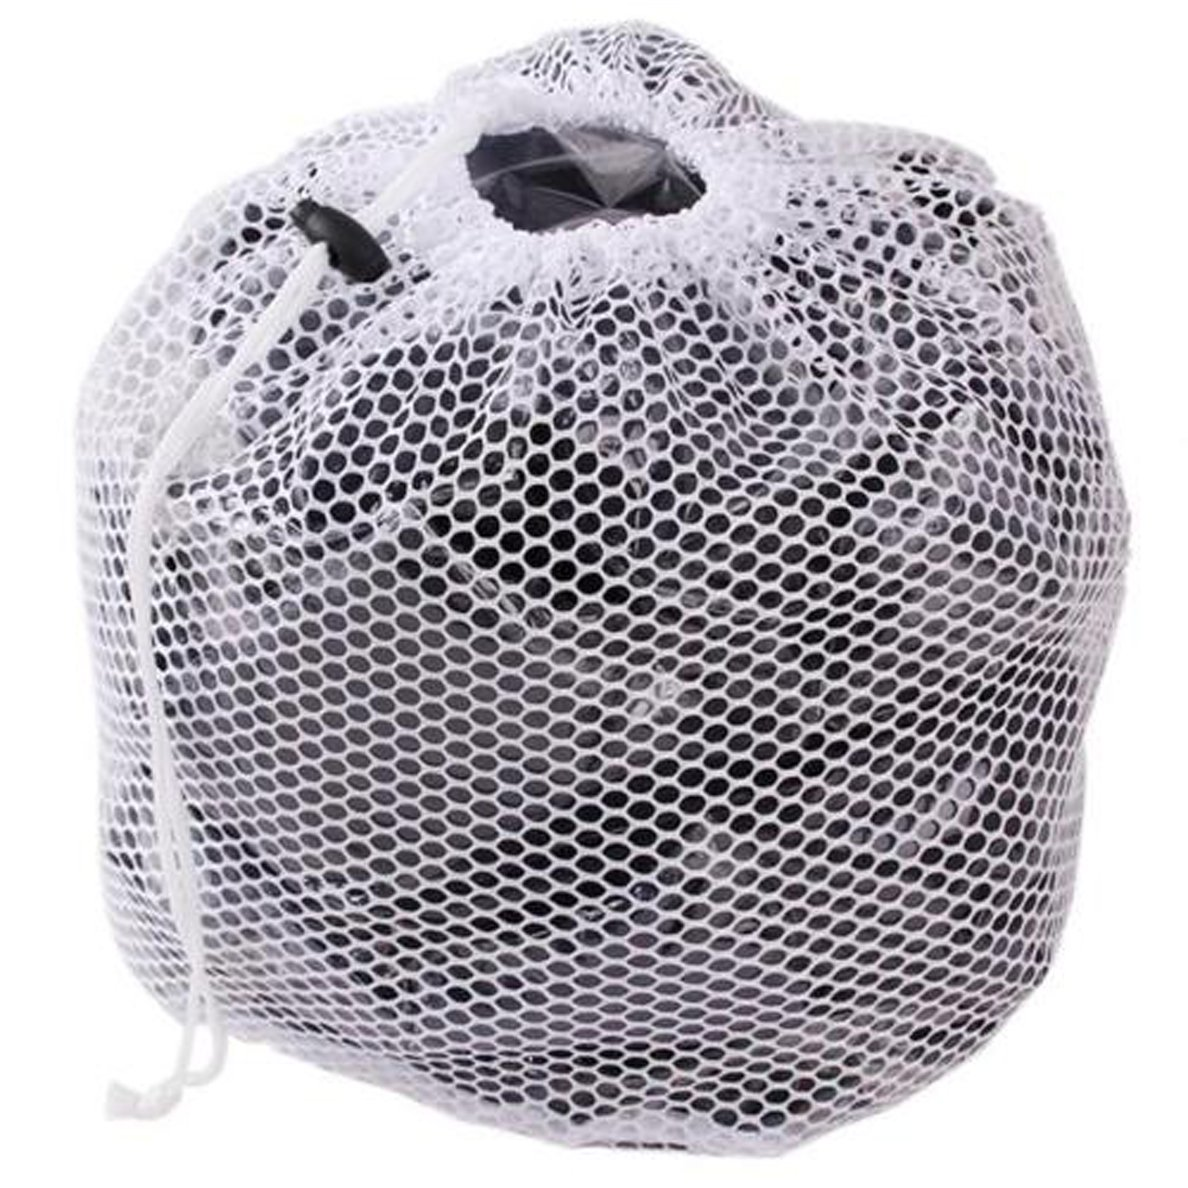 Edtoy White Drawstring Washing Bag for Washing Machine Mesh Net Laundry Bags XL